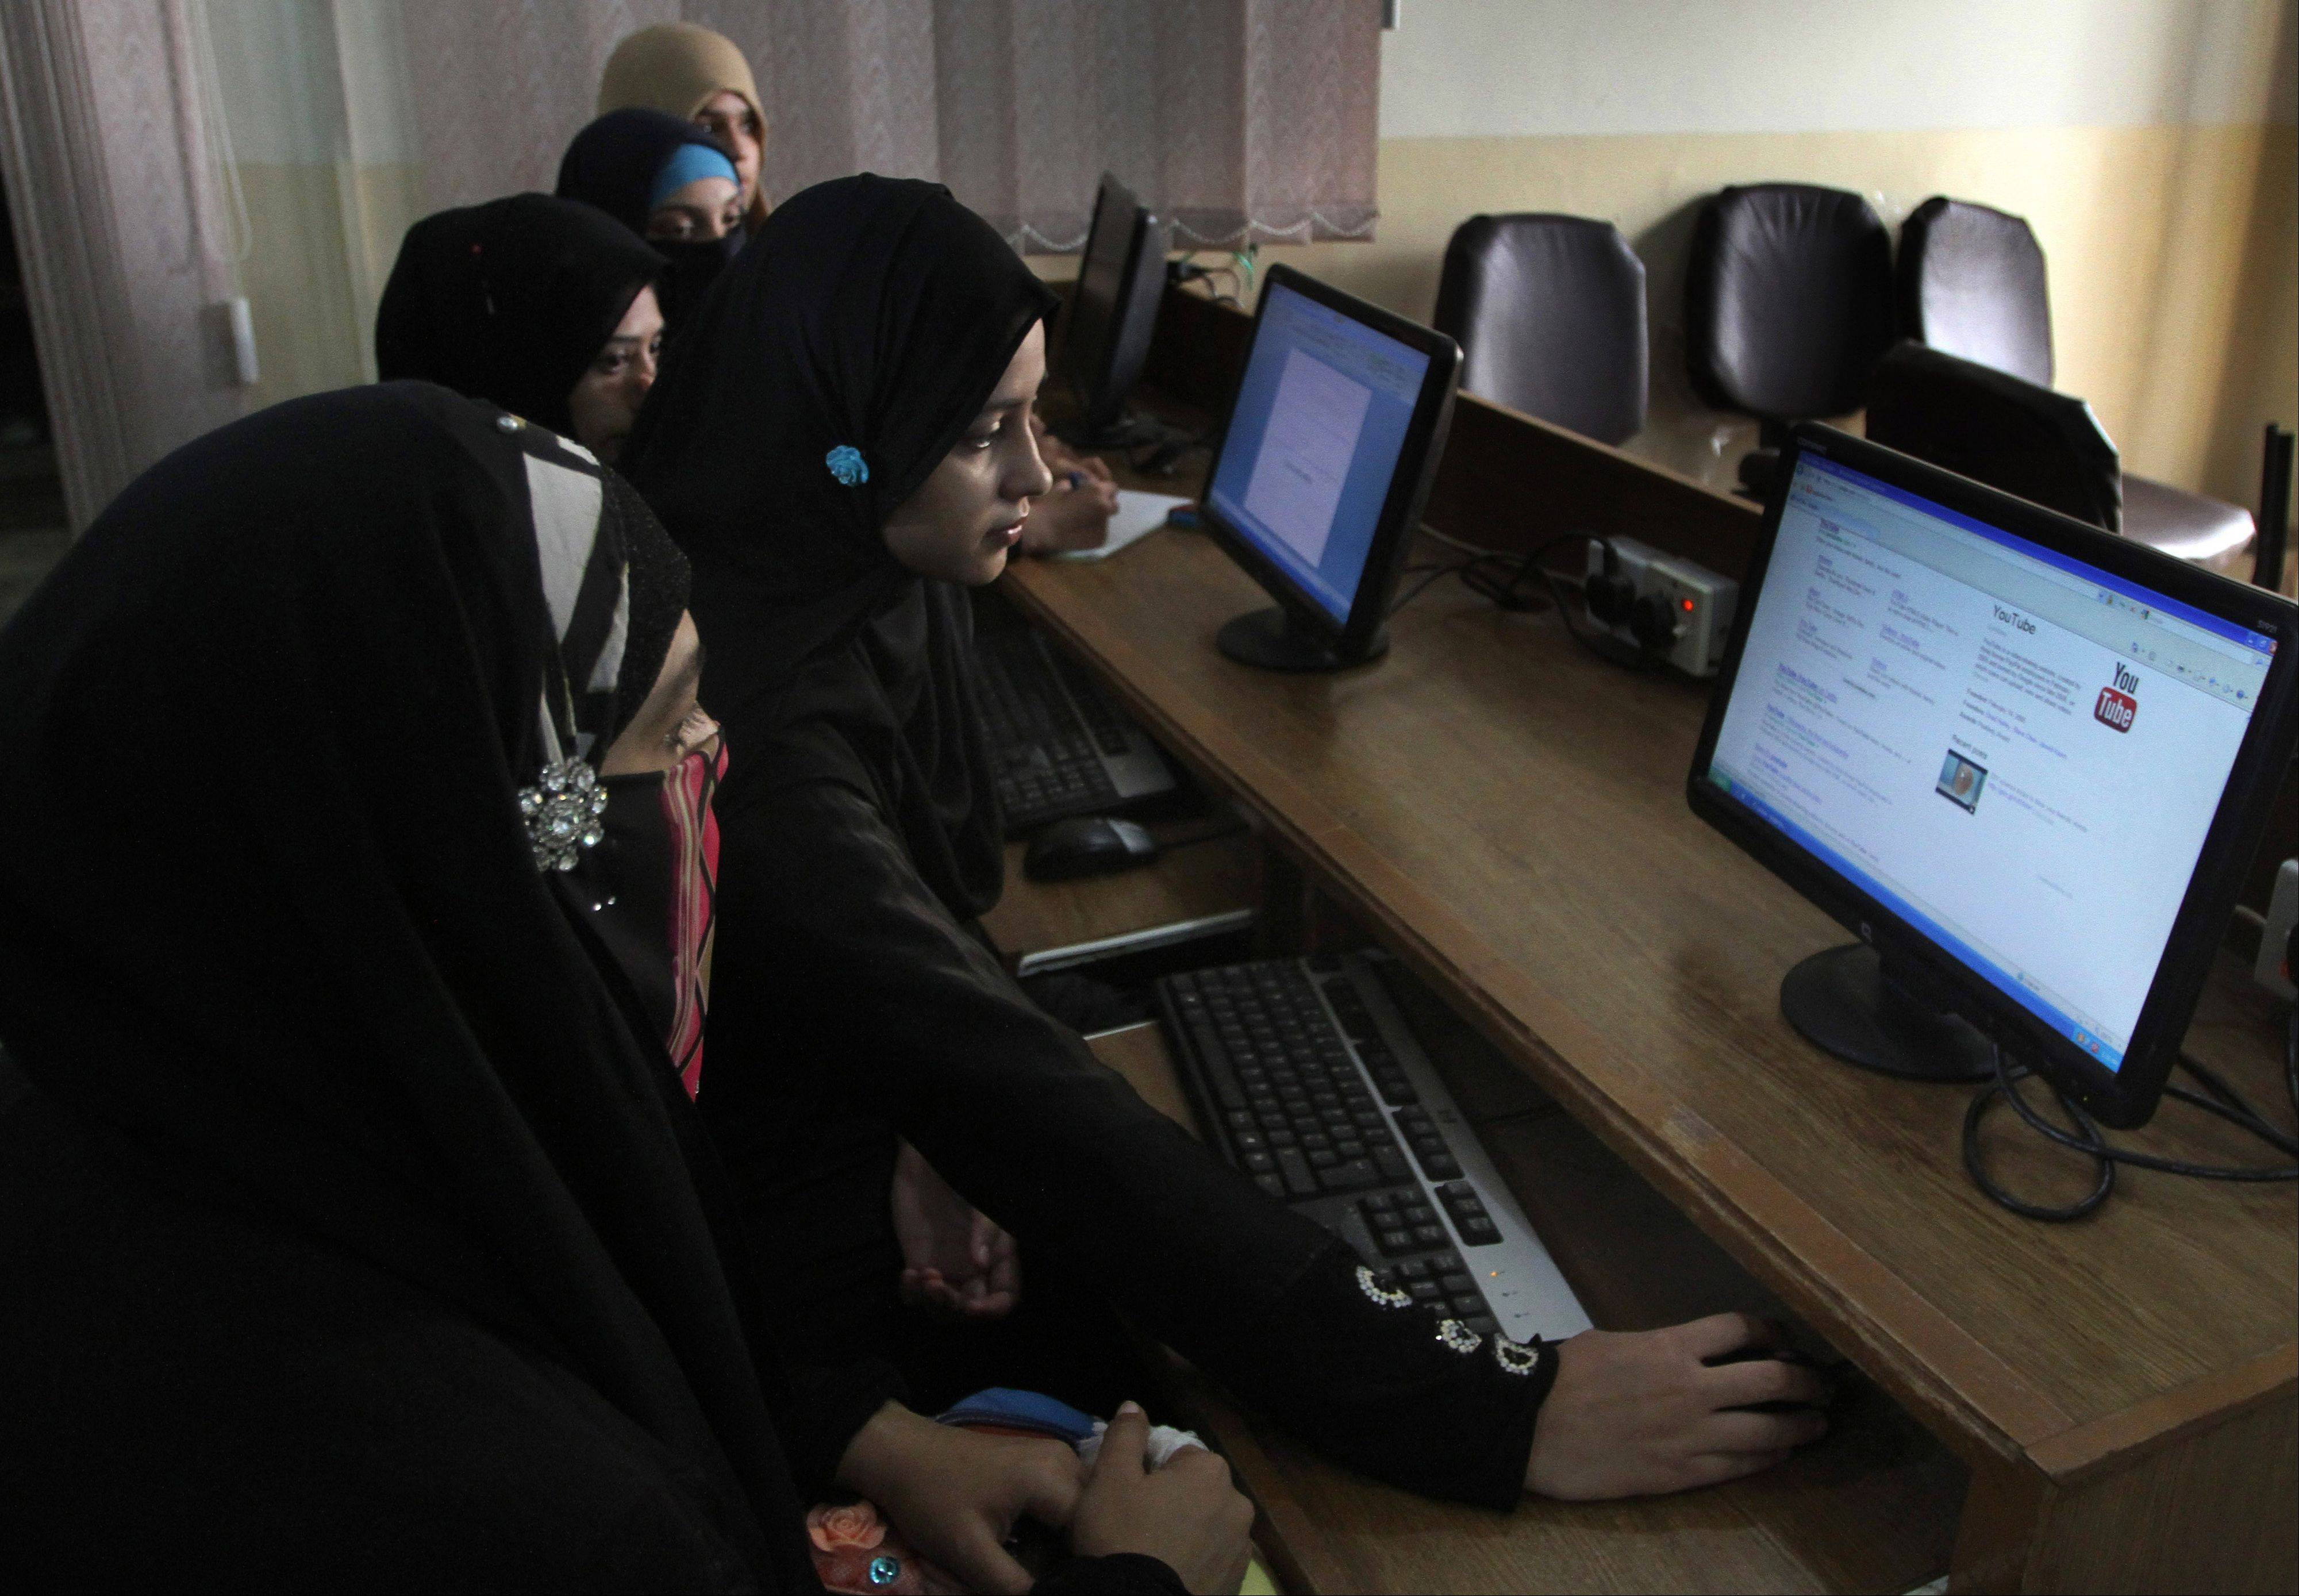 University students try to access YouTube in Karachi, Pakistan. For almost a year, Pakistan's wanting to watch the video-sharing website YouTube have had to find other alternatives. The site has been banned after Pakistani officials acting in response outrage across the country over the airing of an anti-Islamic film blocked access to YouTube.